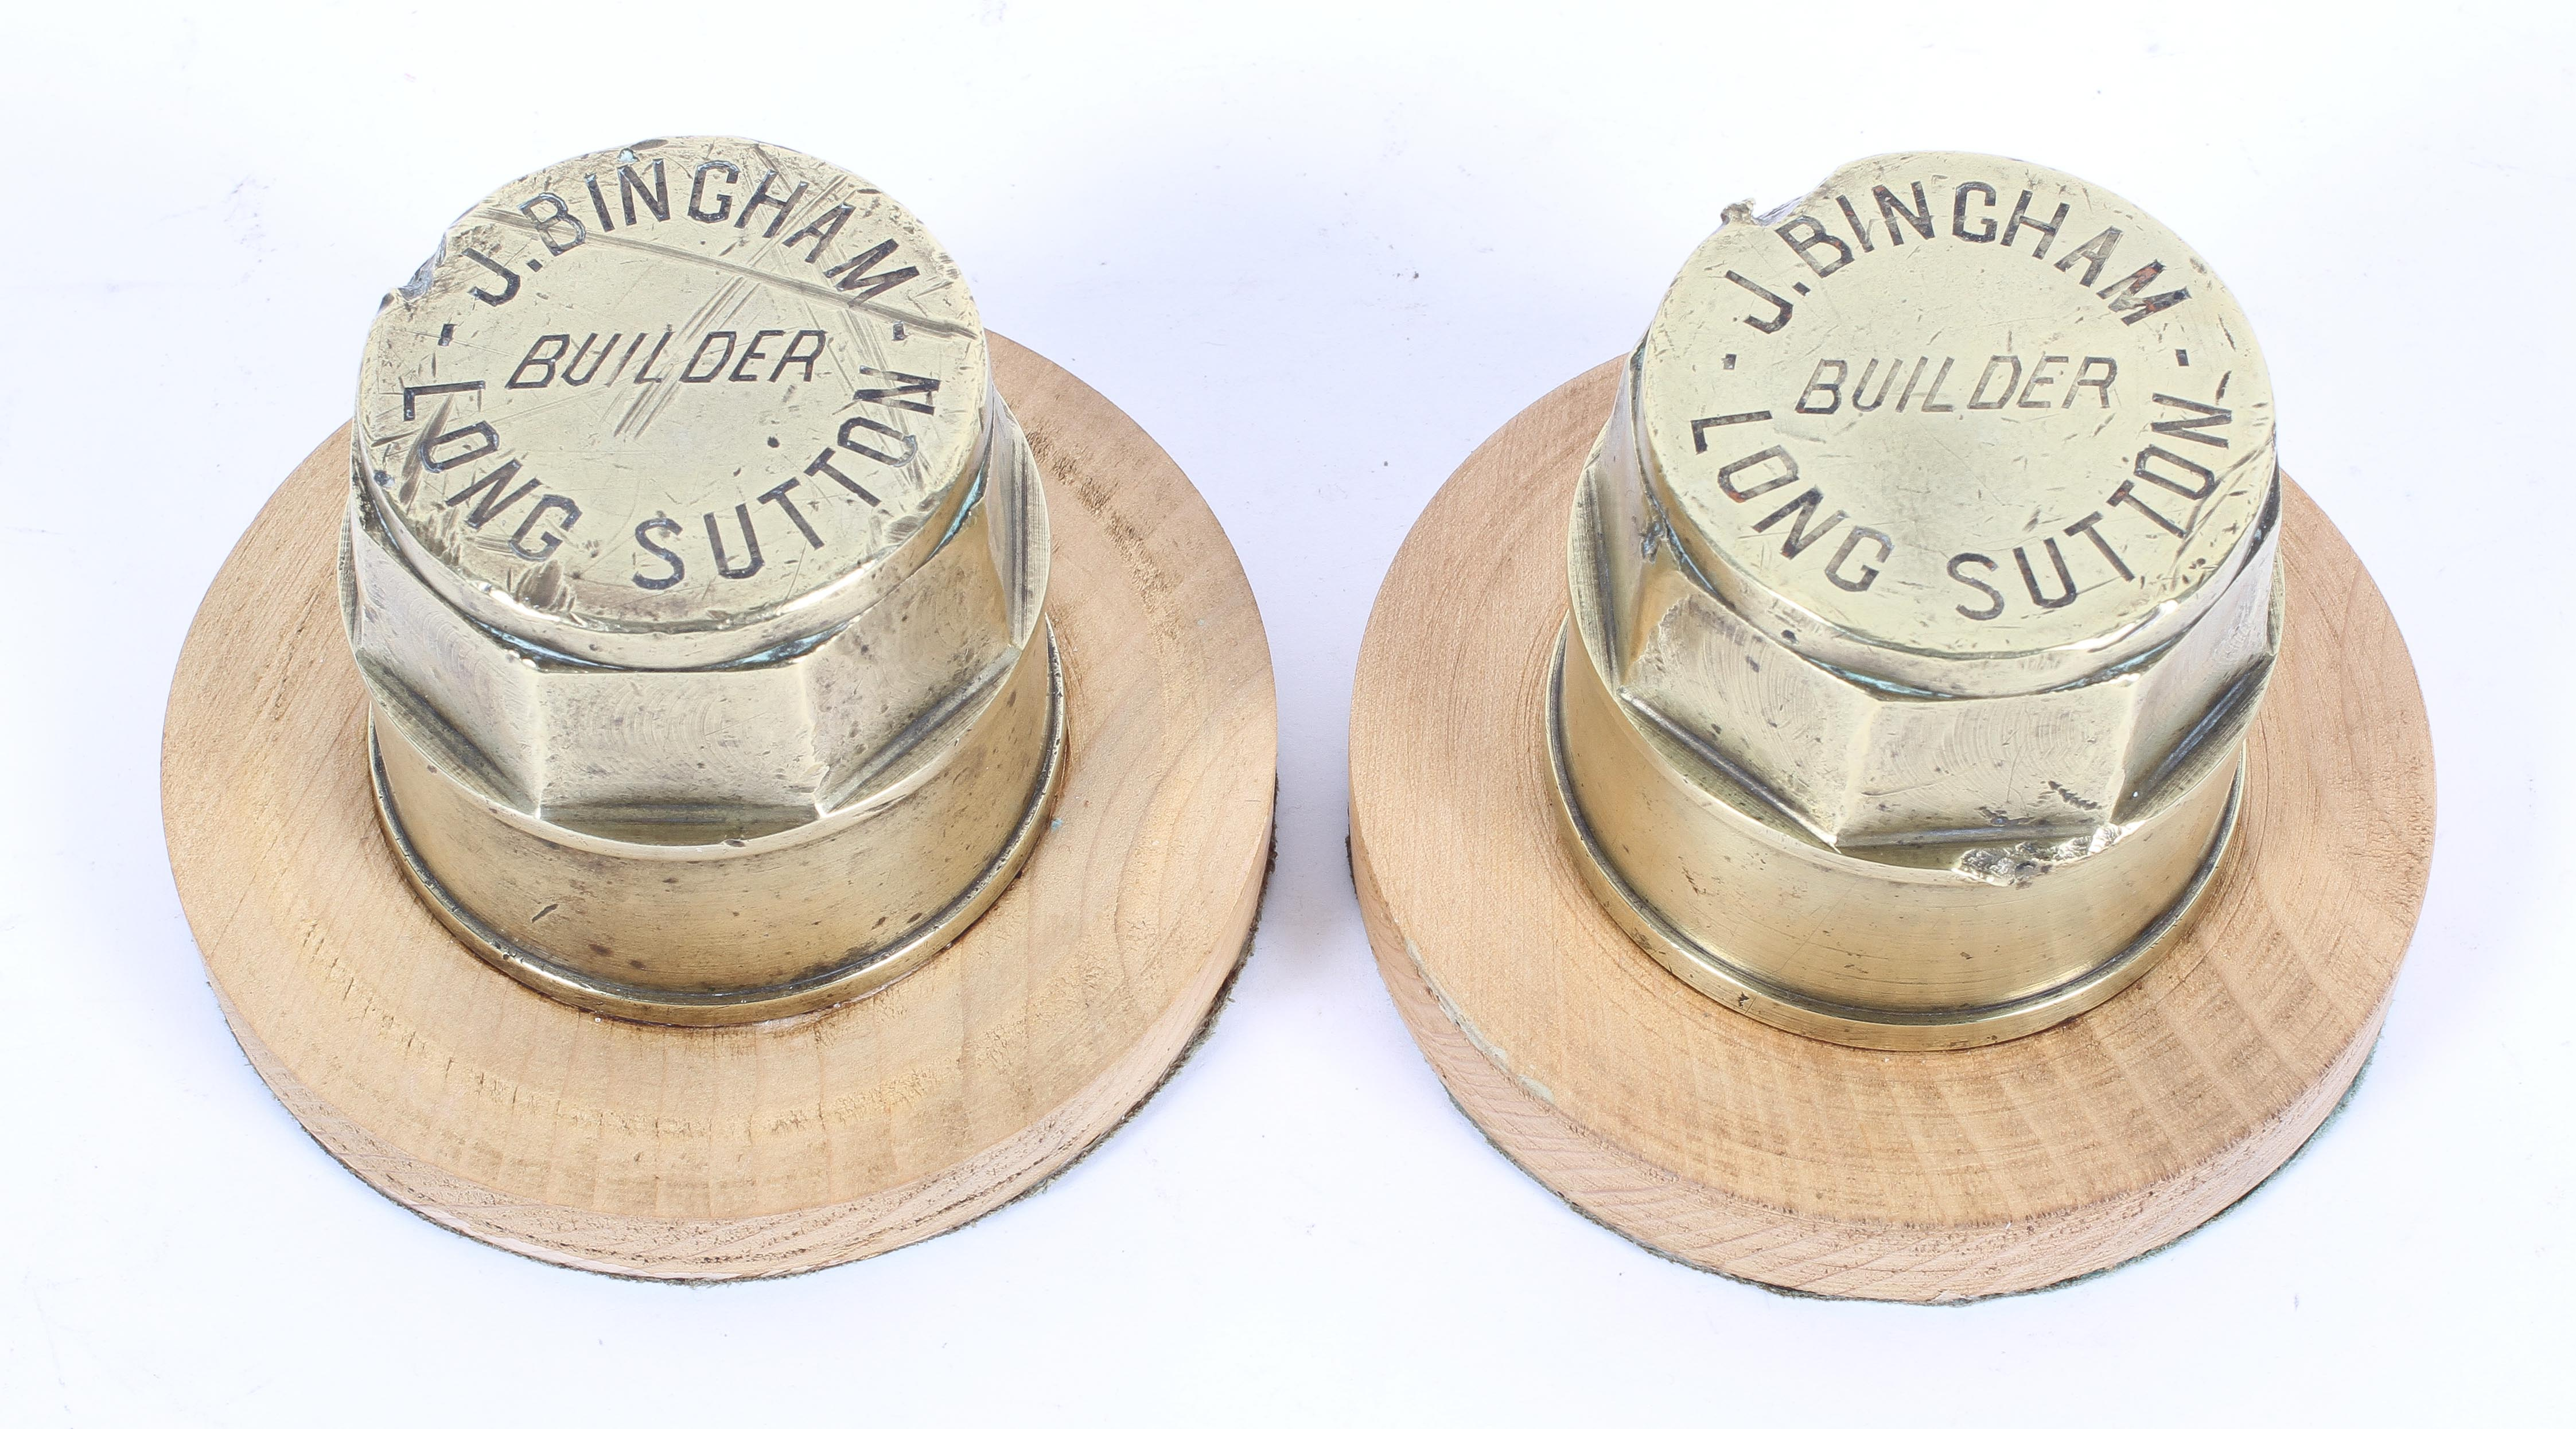 Two brass hub caps mounted as paperweights, by J Bingham, Builder, Long Sutton,